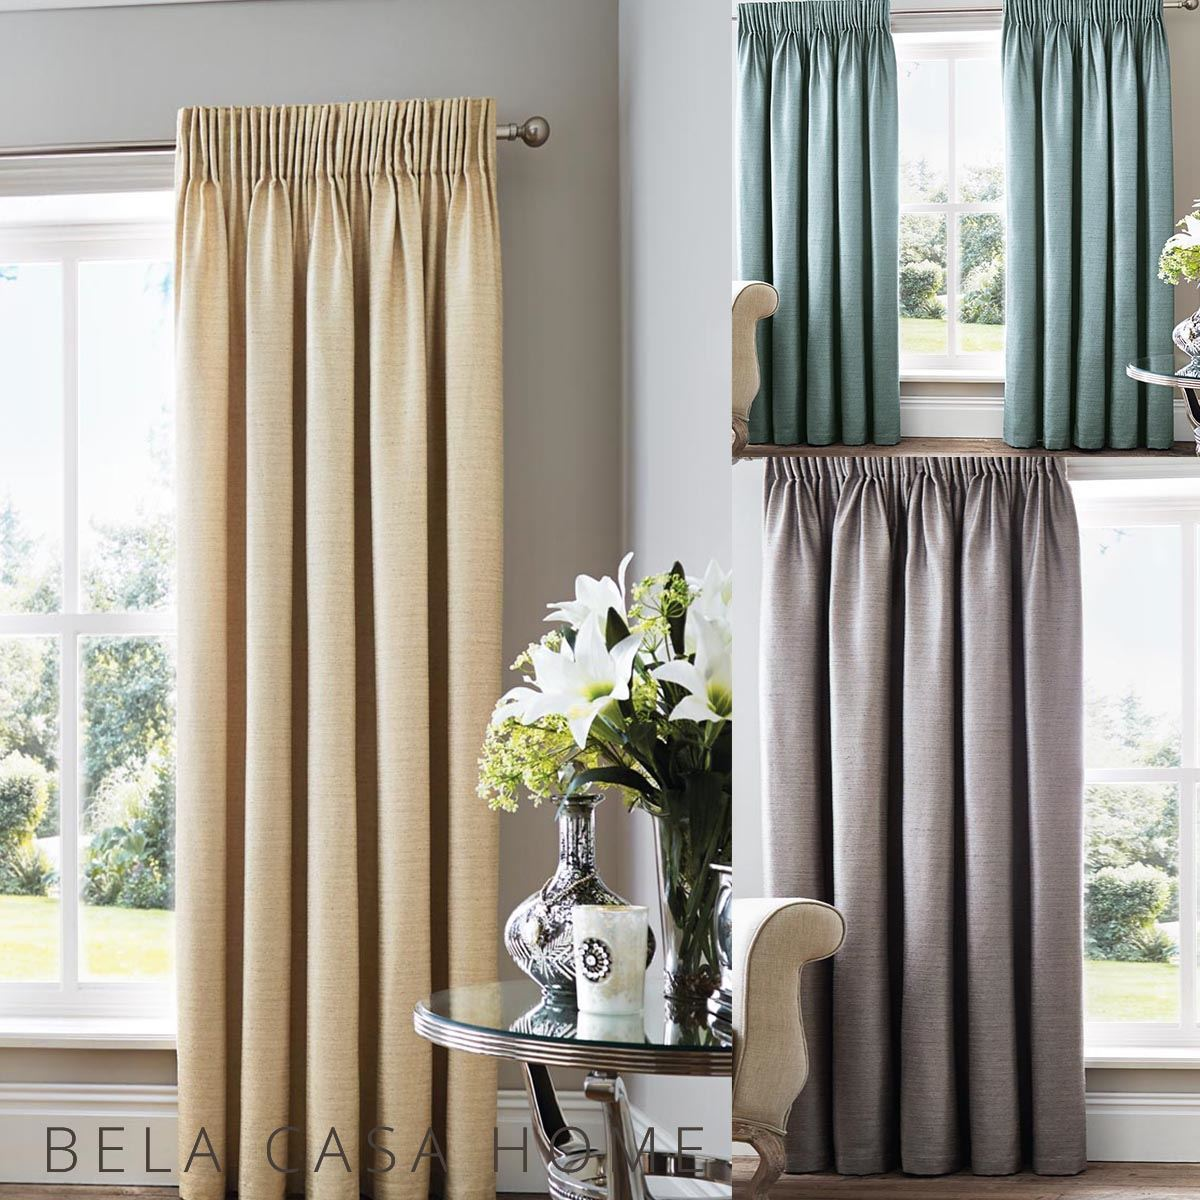 Linen Style Simple Elegant Plain Pencil Pleat Top Lined Ready Made Curtains Ebay